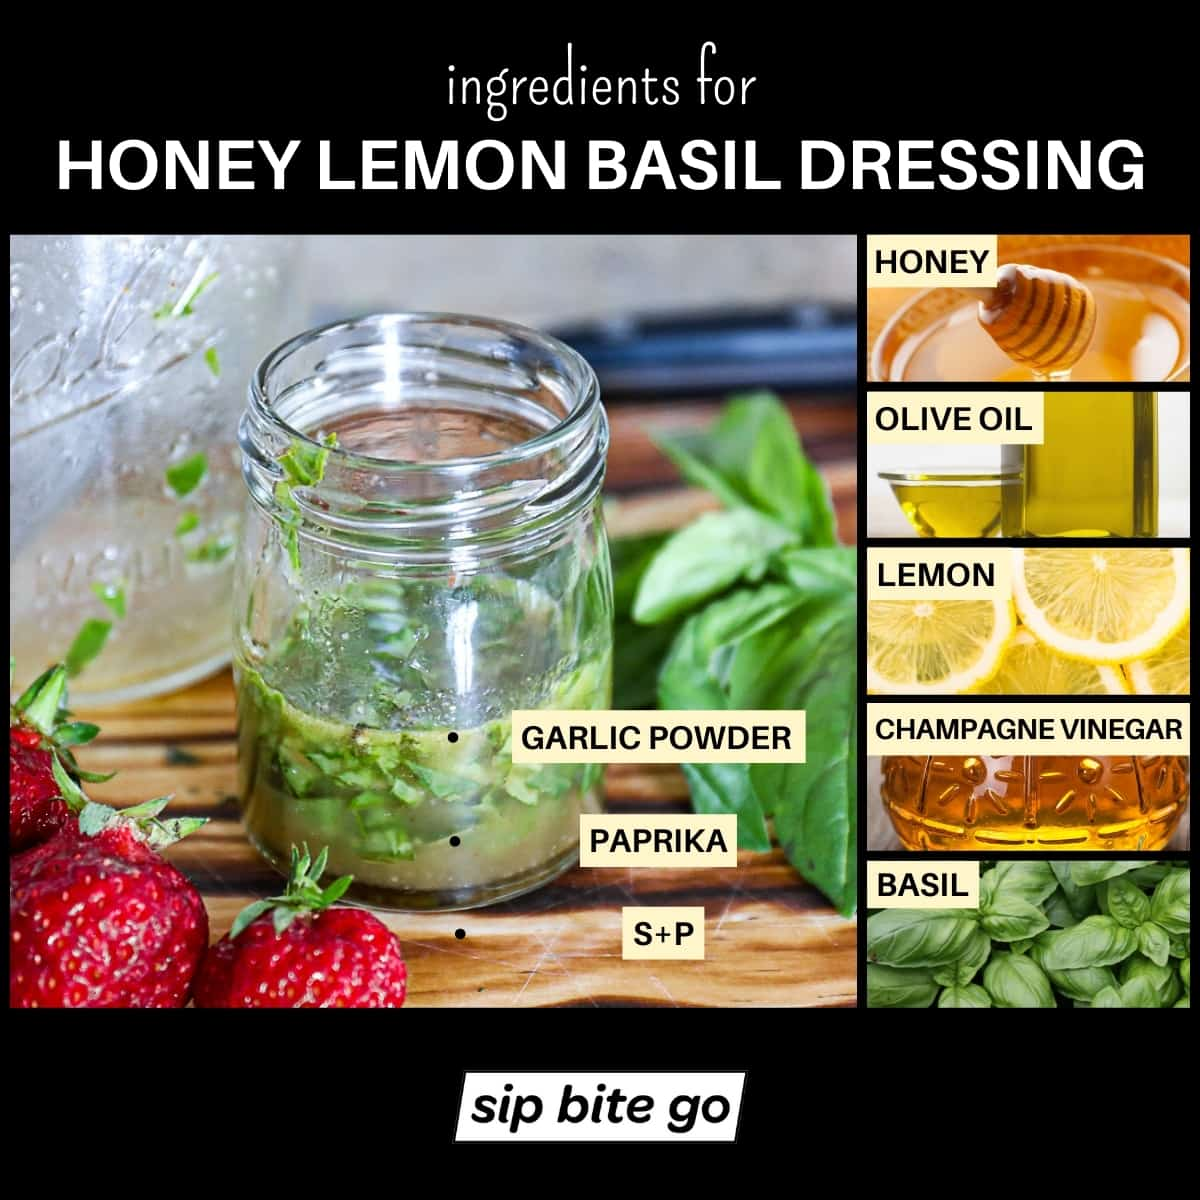 Infographic chart with ingredients list for honey lemon basil dressing with olive oil.